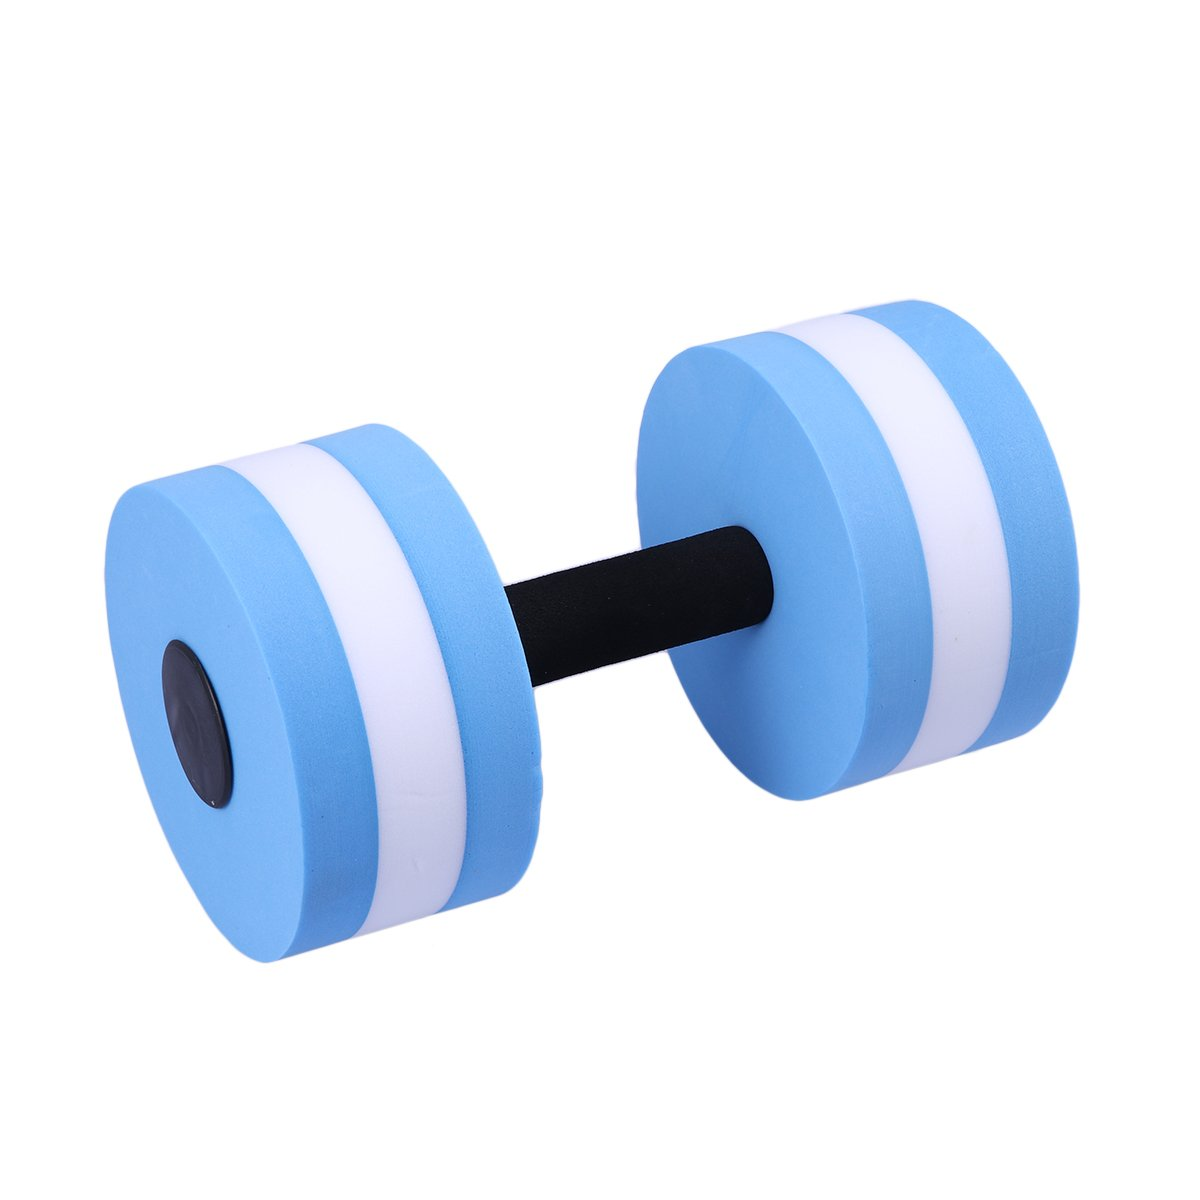 WINOMO Water Dumbbell Aqua Weight (Blue White)